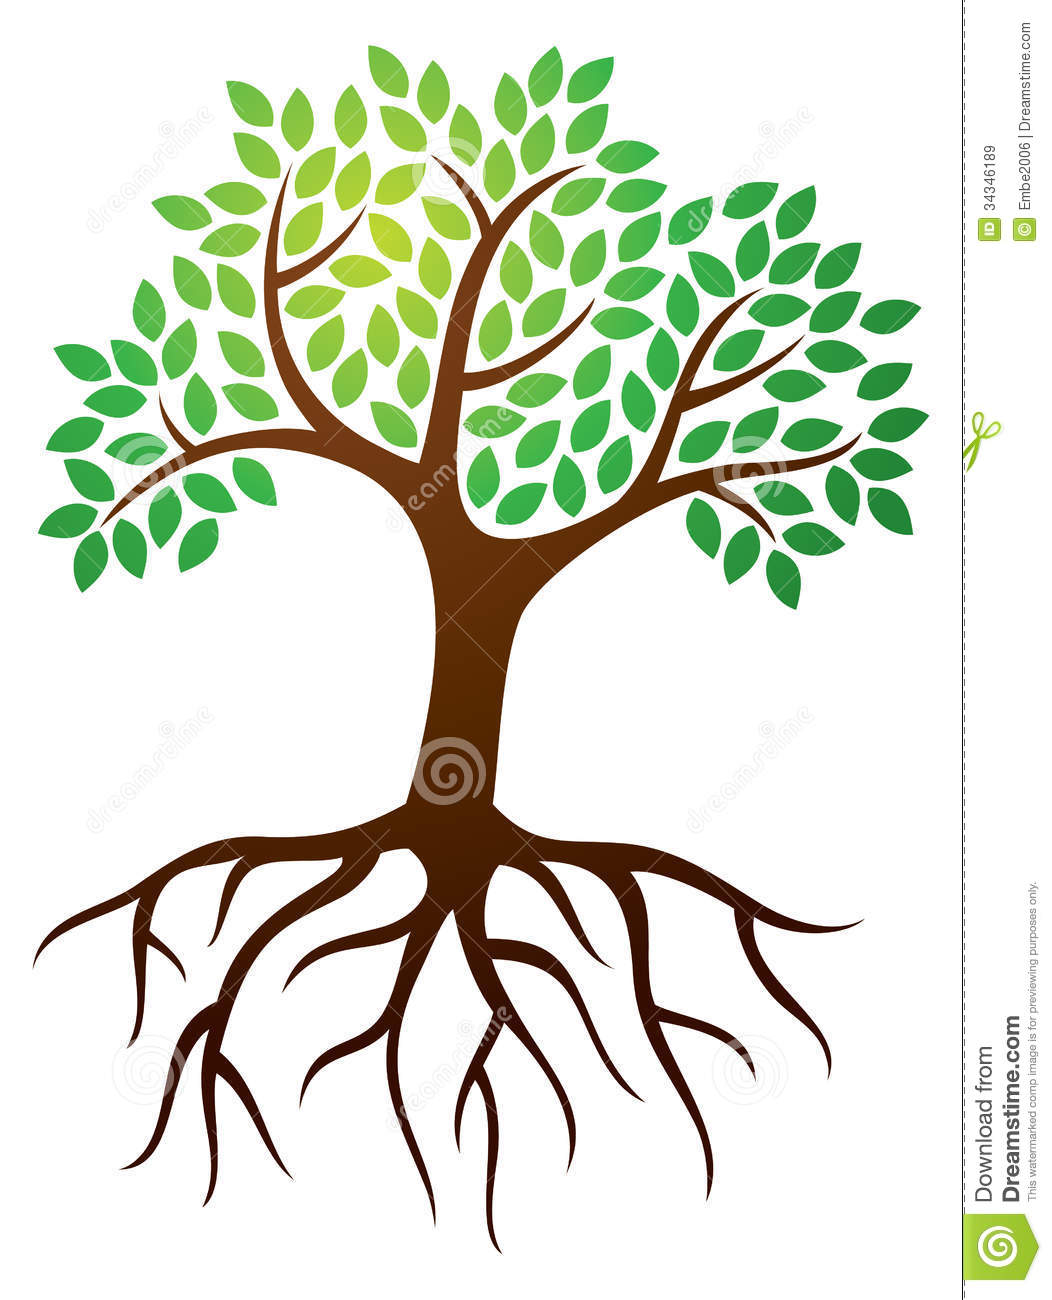 Tree root clip art.